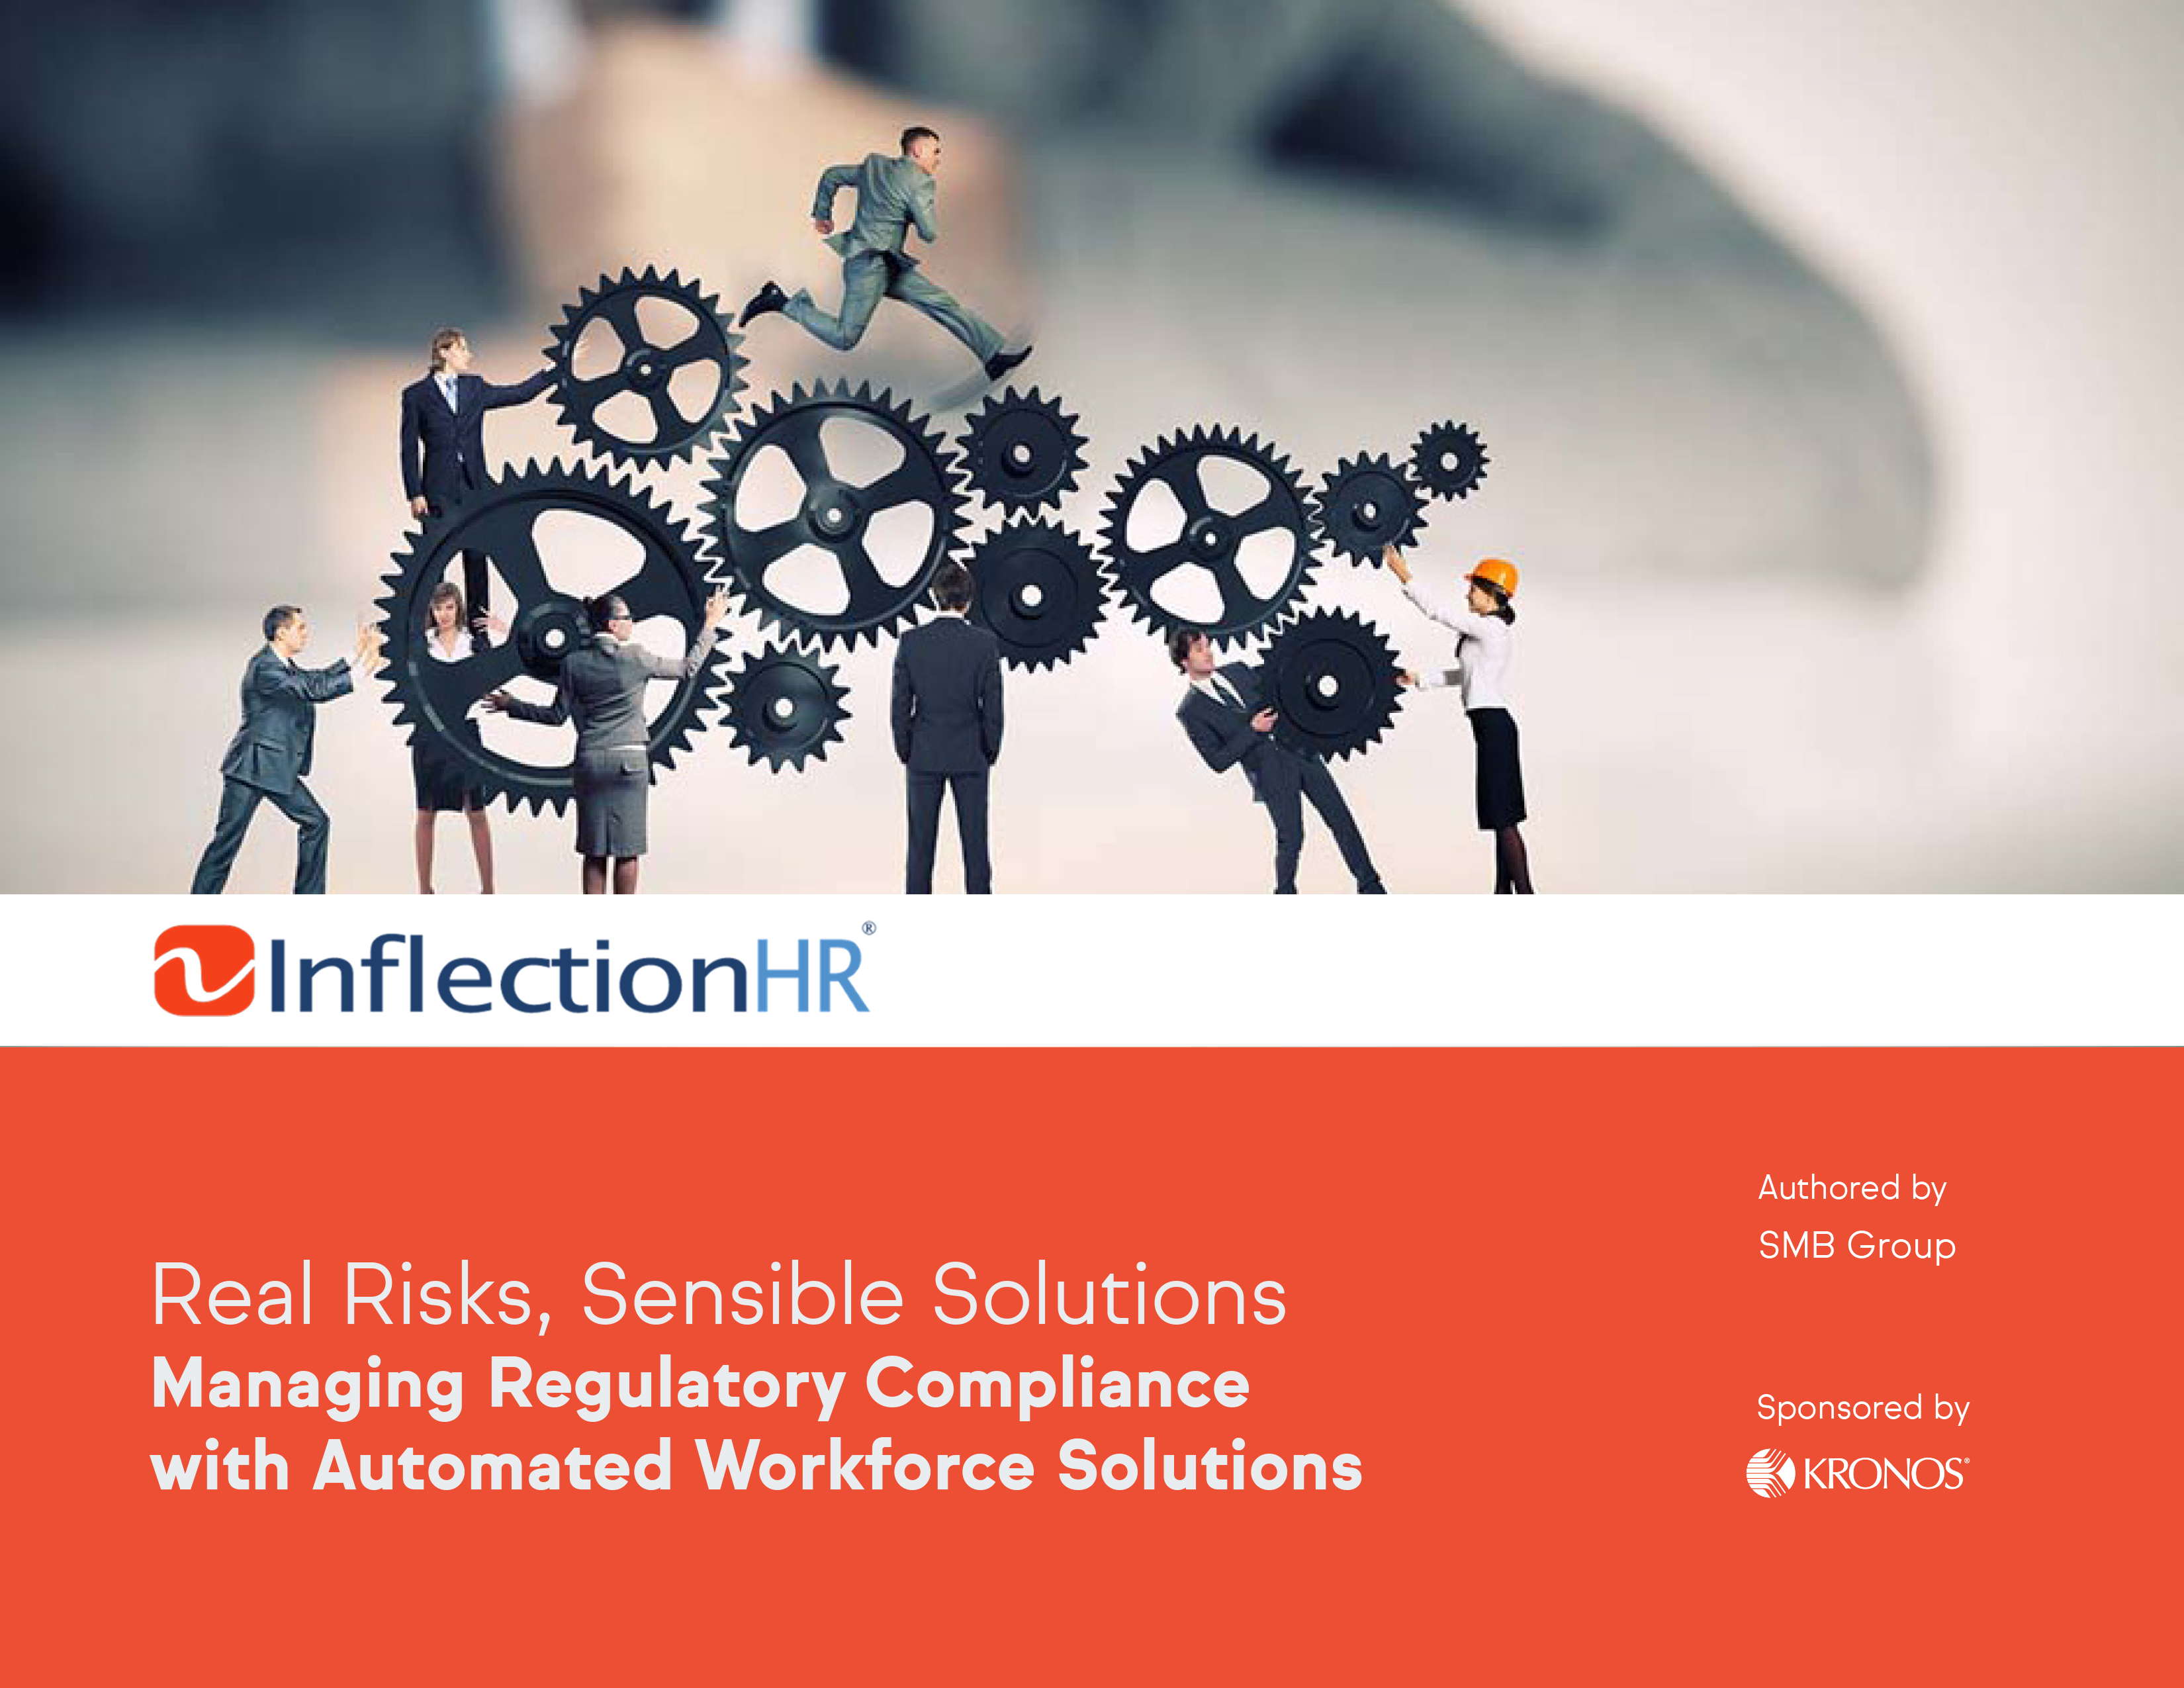 Managing Regulatory Compliance with Automated Workforce Management Solutions | Inflection HR